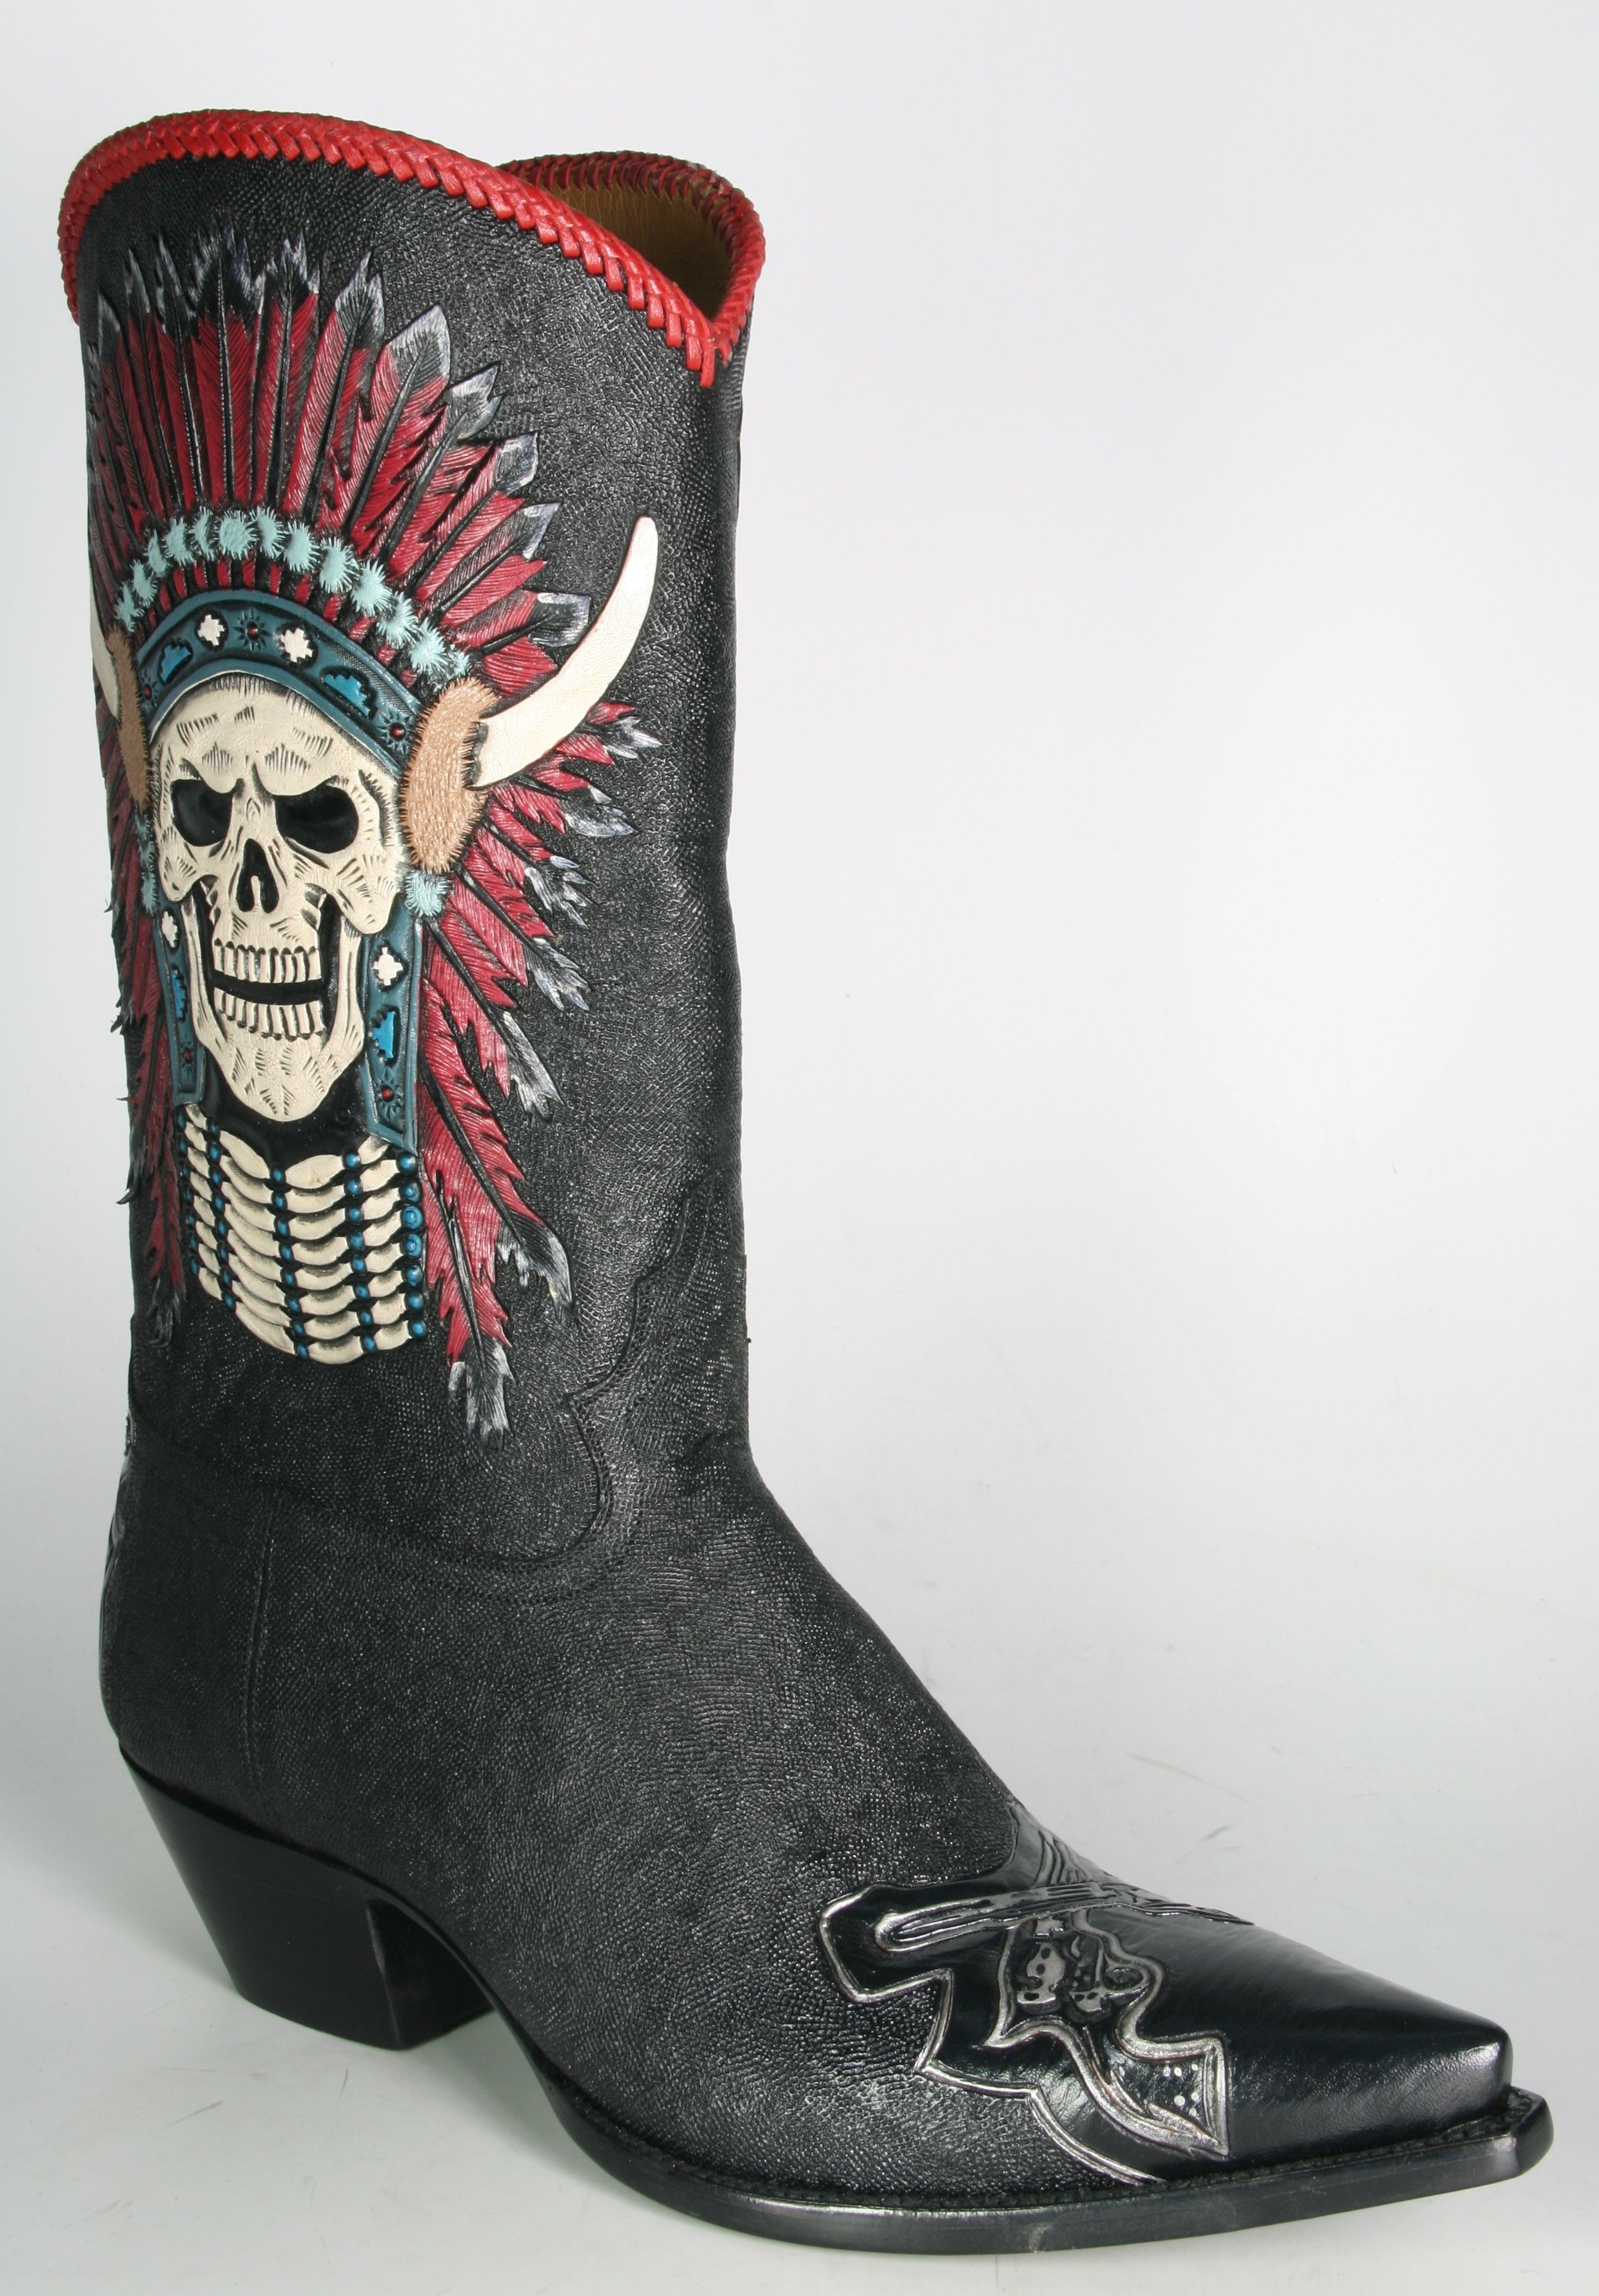 Cowboy Boots with skulls for men | By Boots 5757 Caborca